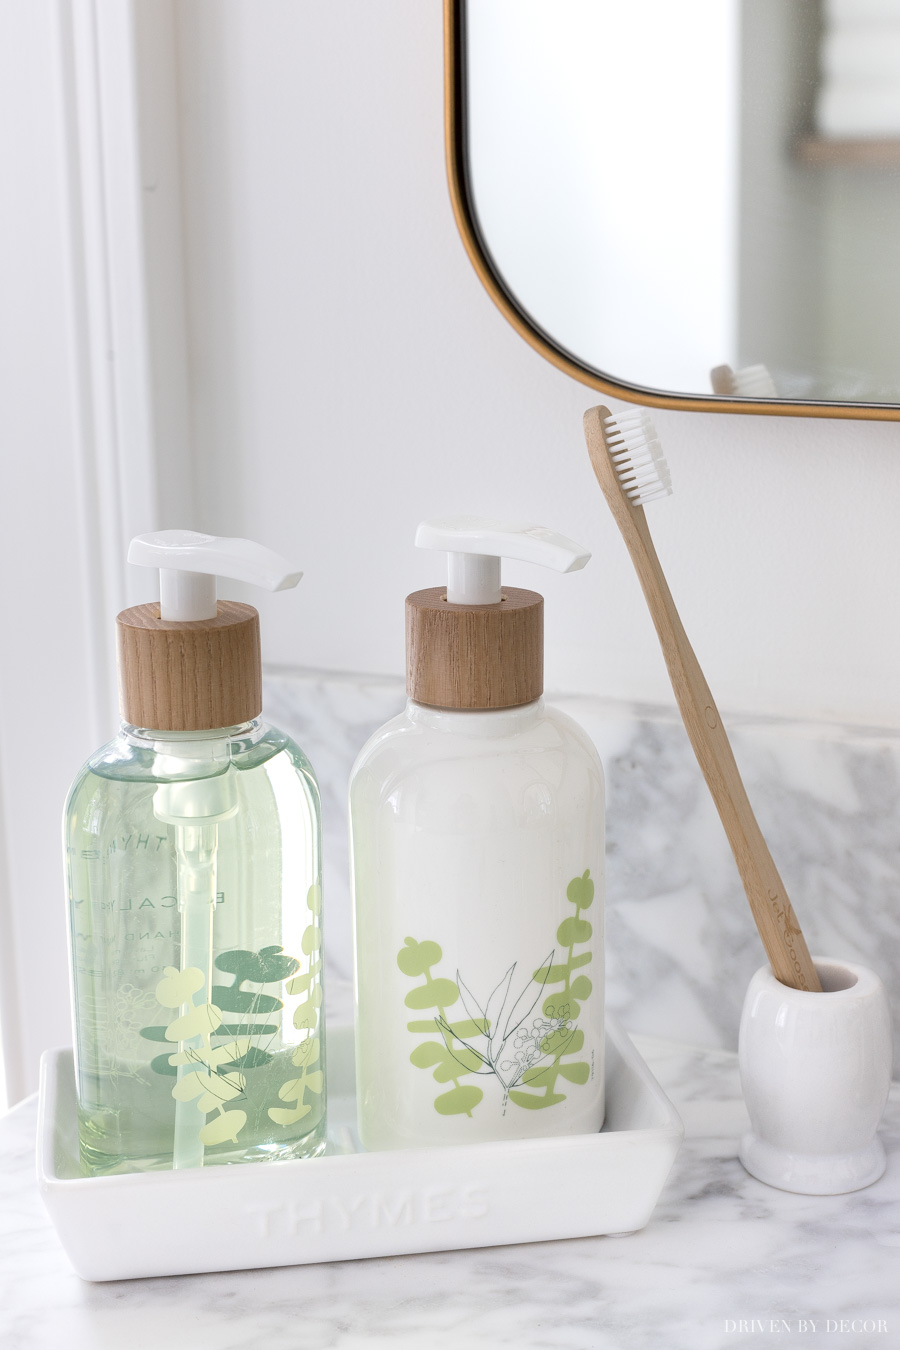 Love this soap pump and lotion duo that comes in a small tray - the perfect bathroom decor!